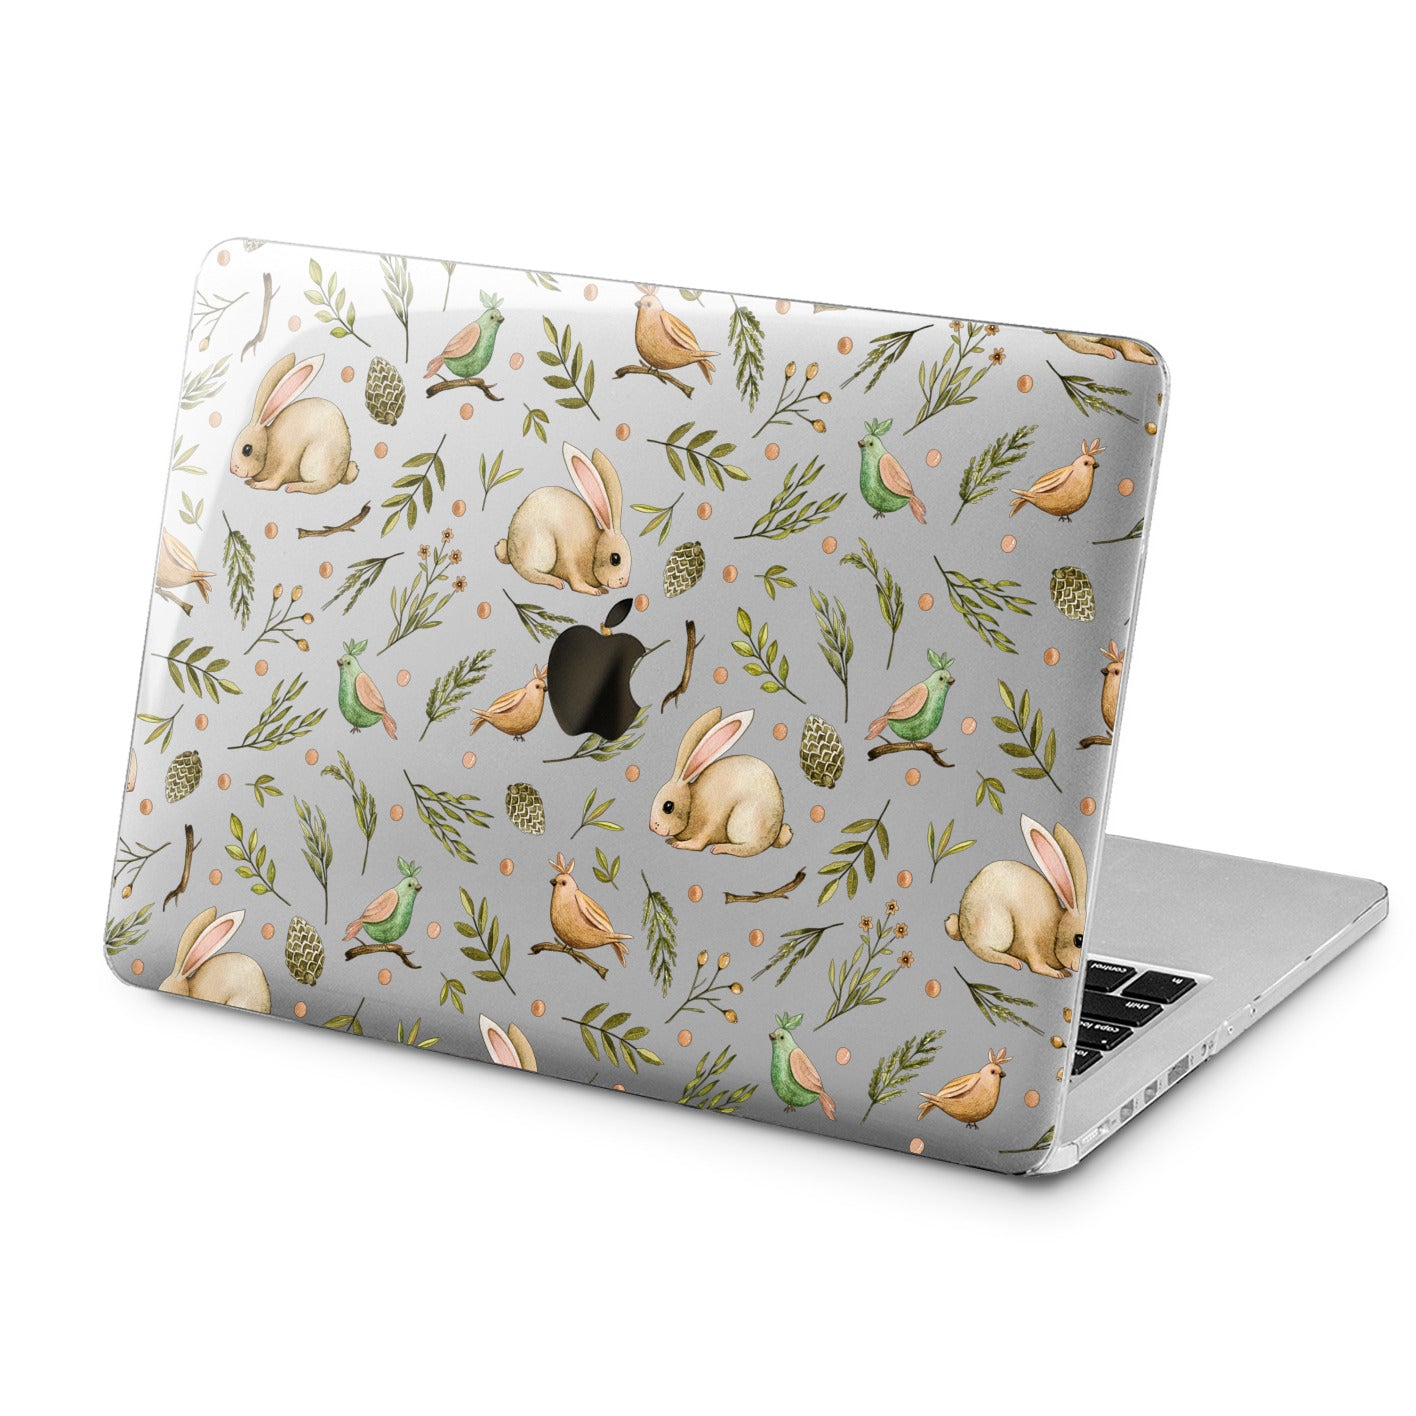 Lex Altern Lex Altern Rabbit Pattern Case for your Laptop Apple Macbook.